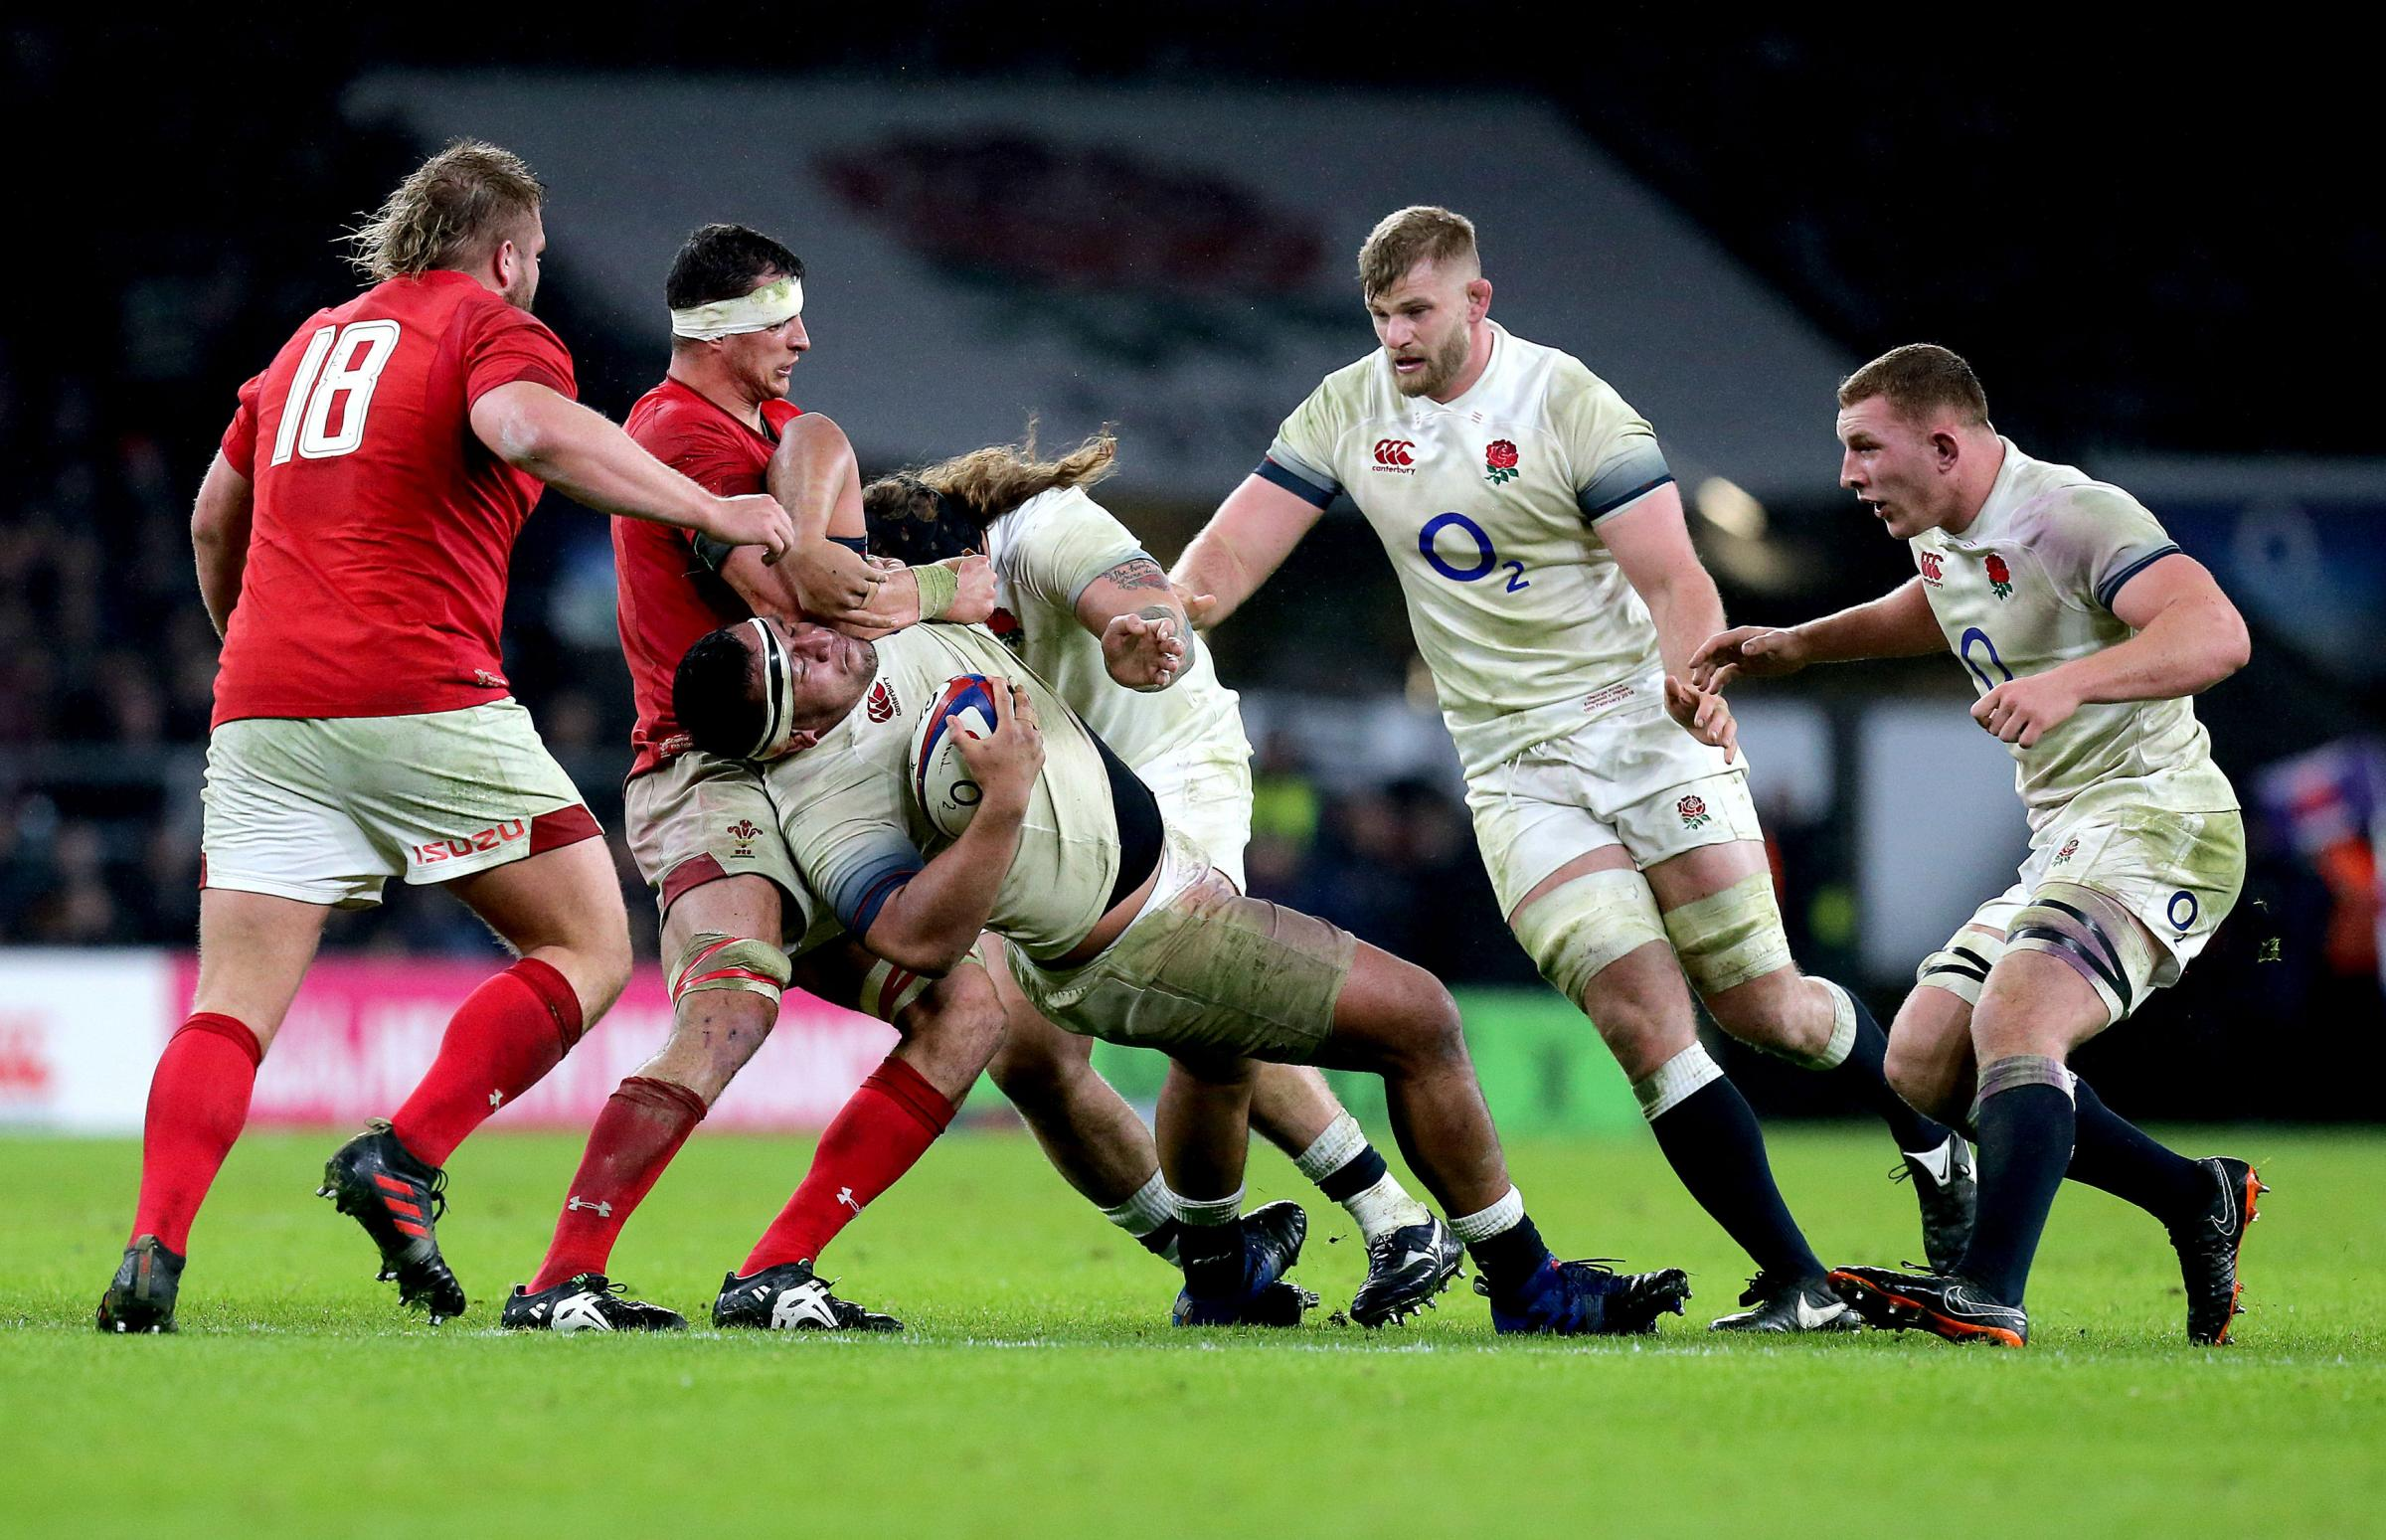 Gatland: Wales are upbeat for Dublin after pushing England so close